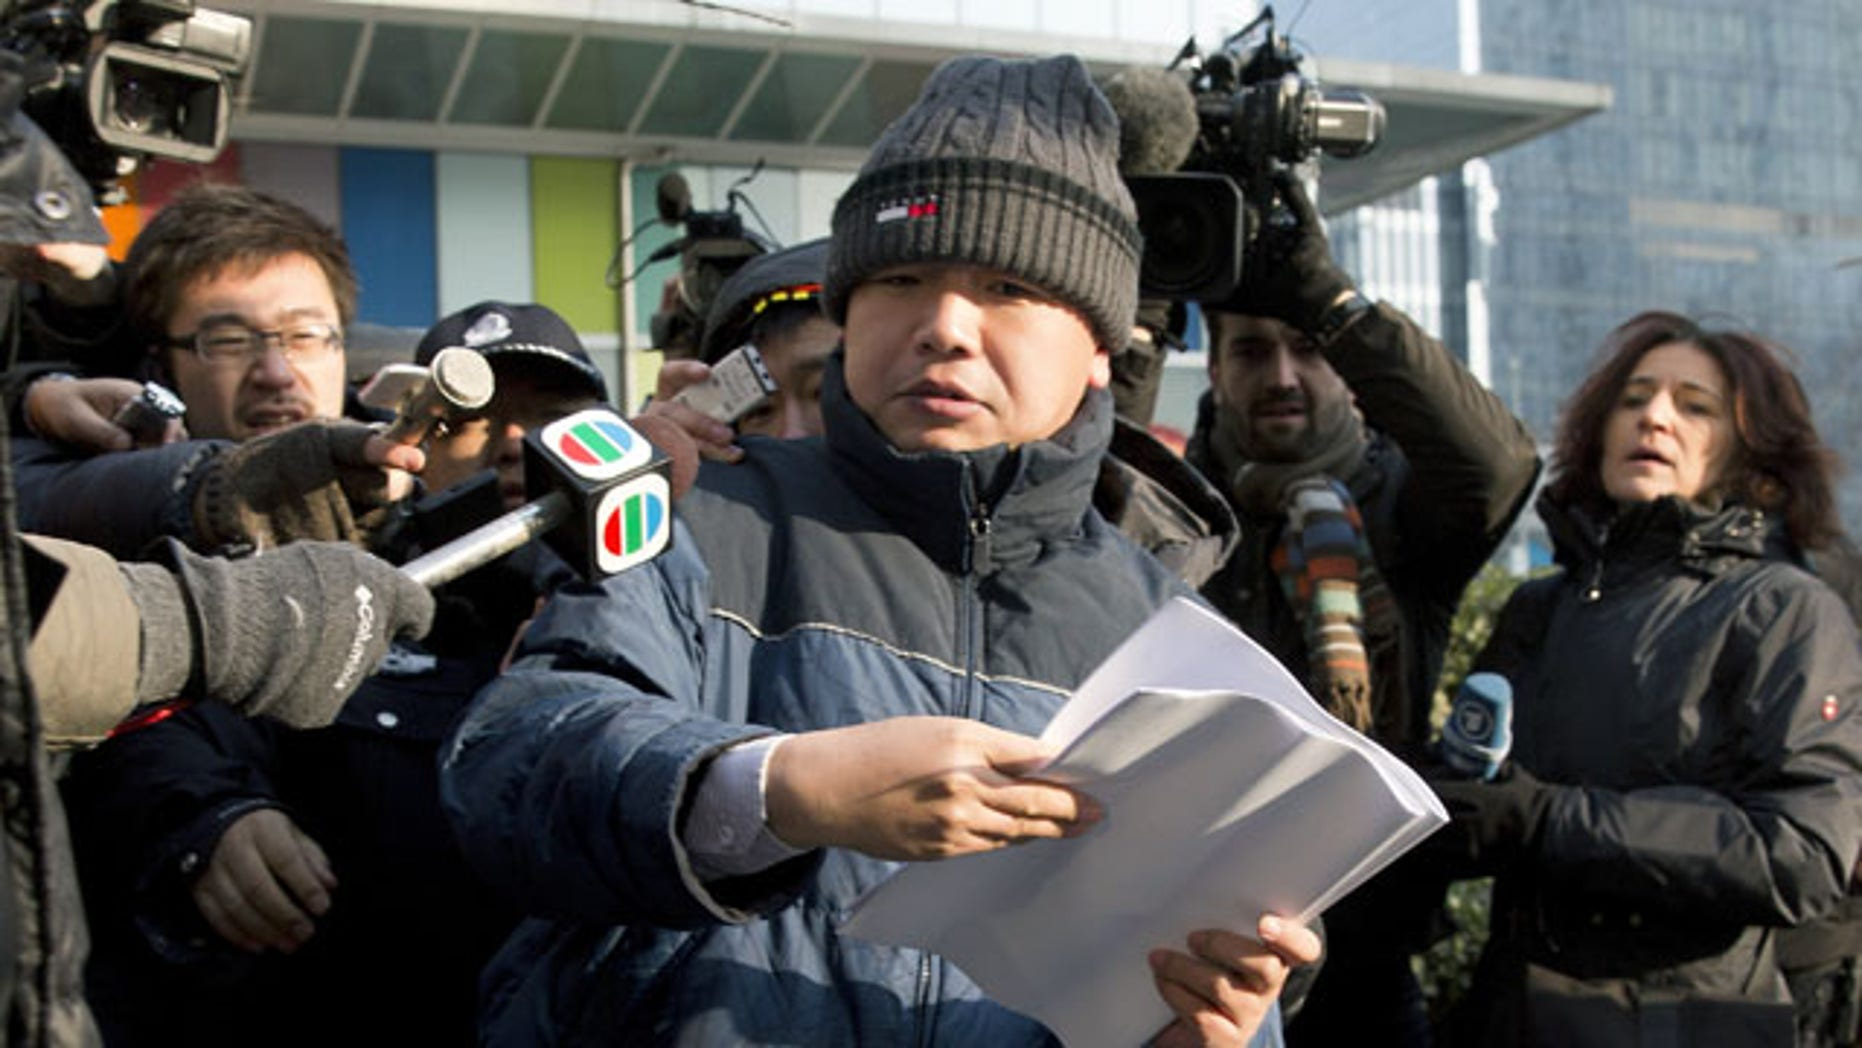 January 26, 2014: Zhang Qingfang, lawyer of legal scholar and founder of the New Citizens movement Xu Zhiyong, speaks to the media near the No. 1 Intermediate People's Court, in Beijing . The Beijing court on Sunday sentenced Xu to four years in jail for disrupting order in public places, in a case that the U.S. government and other critics say is retribution against his push to fight corruption and create equal educational opportunities. (AP Photo/Andy Wong)